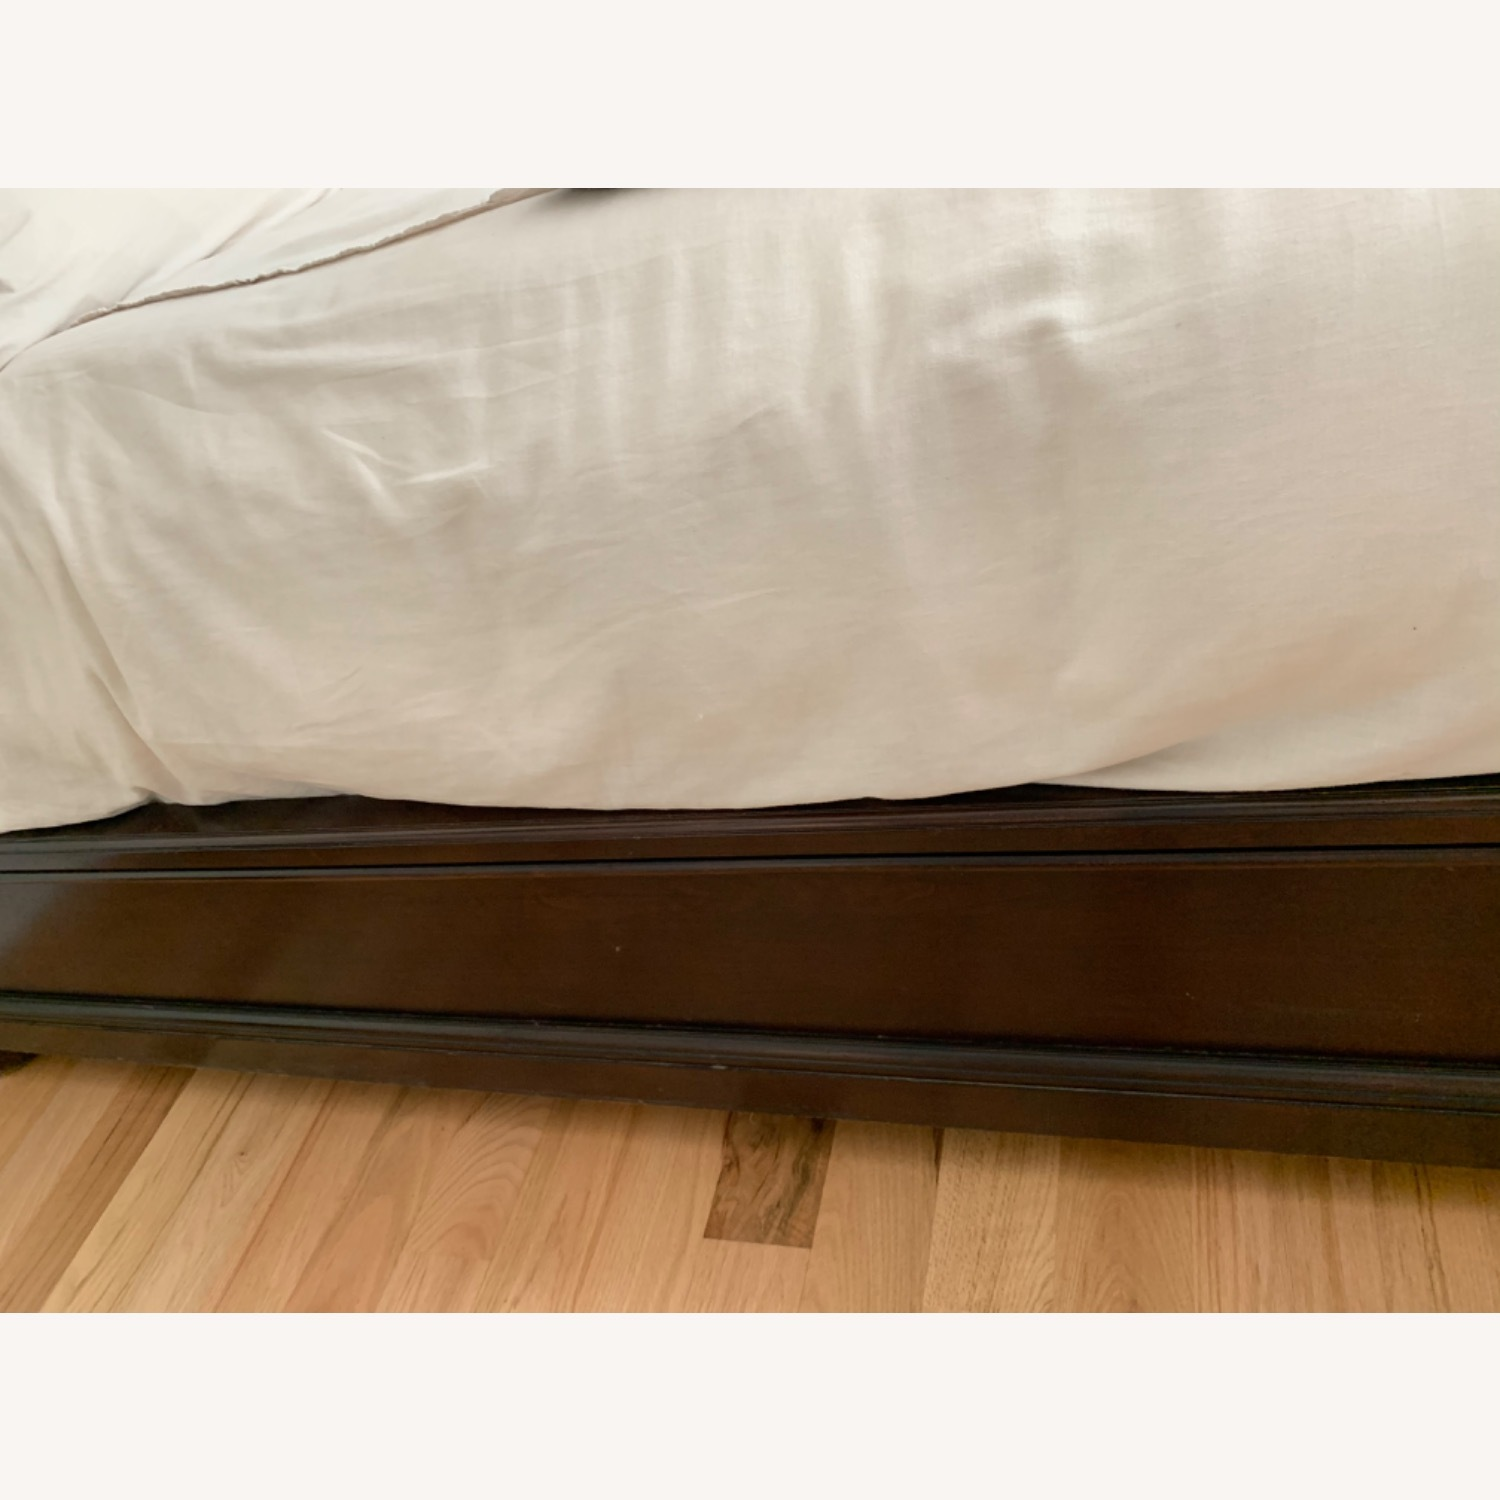 Raymour & Flanigan King Leather Bed Frame - image-14